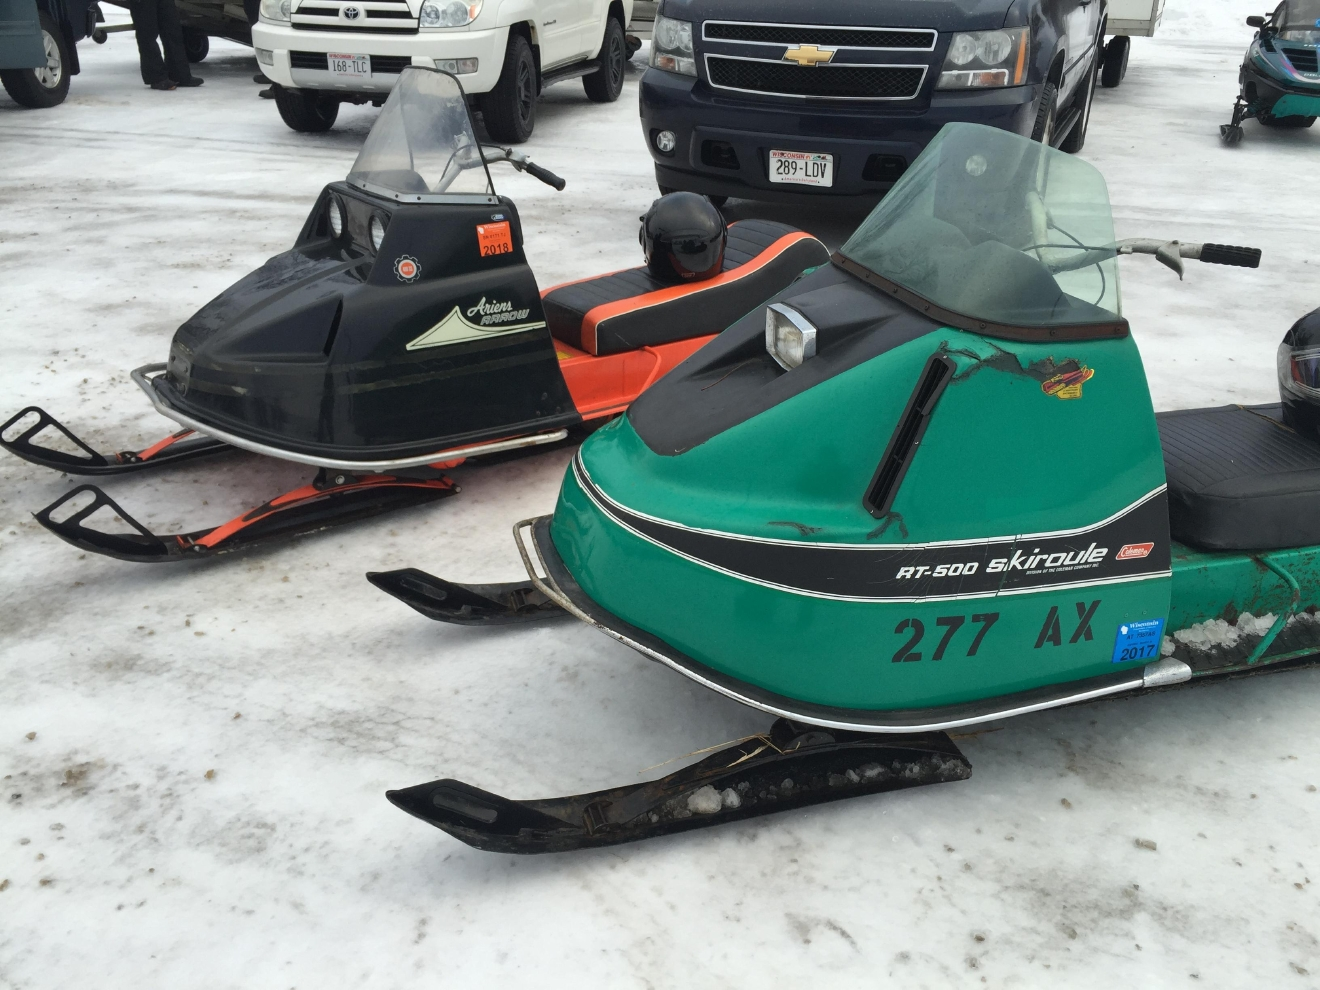 Vintage snowmobiles hit the trail in crivitz for annual for Vintage sleds